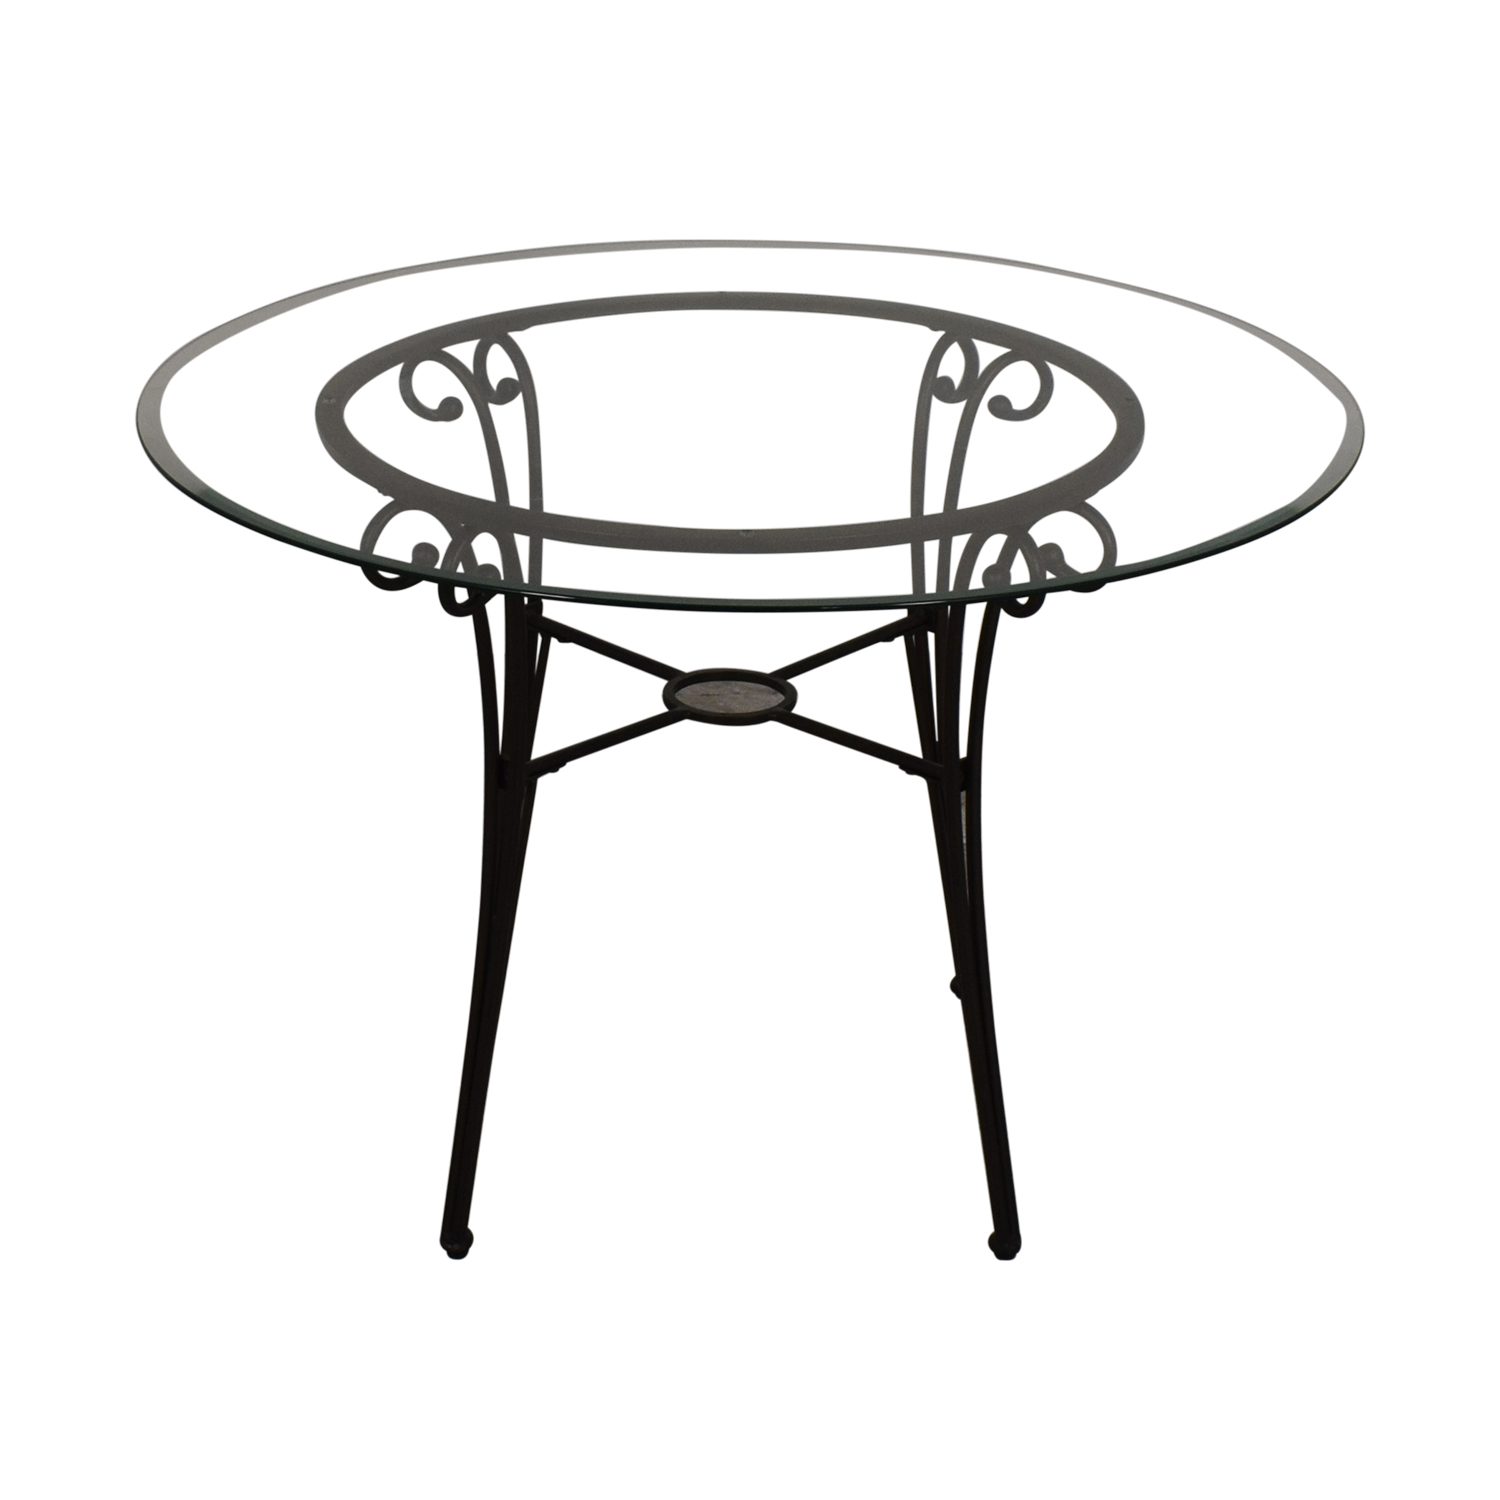 Glass and Metal Dining Table / Dinner Tables